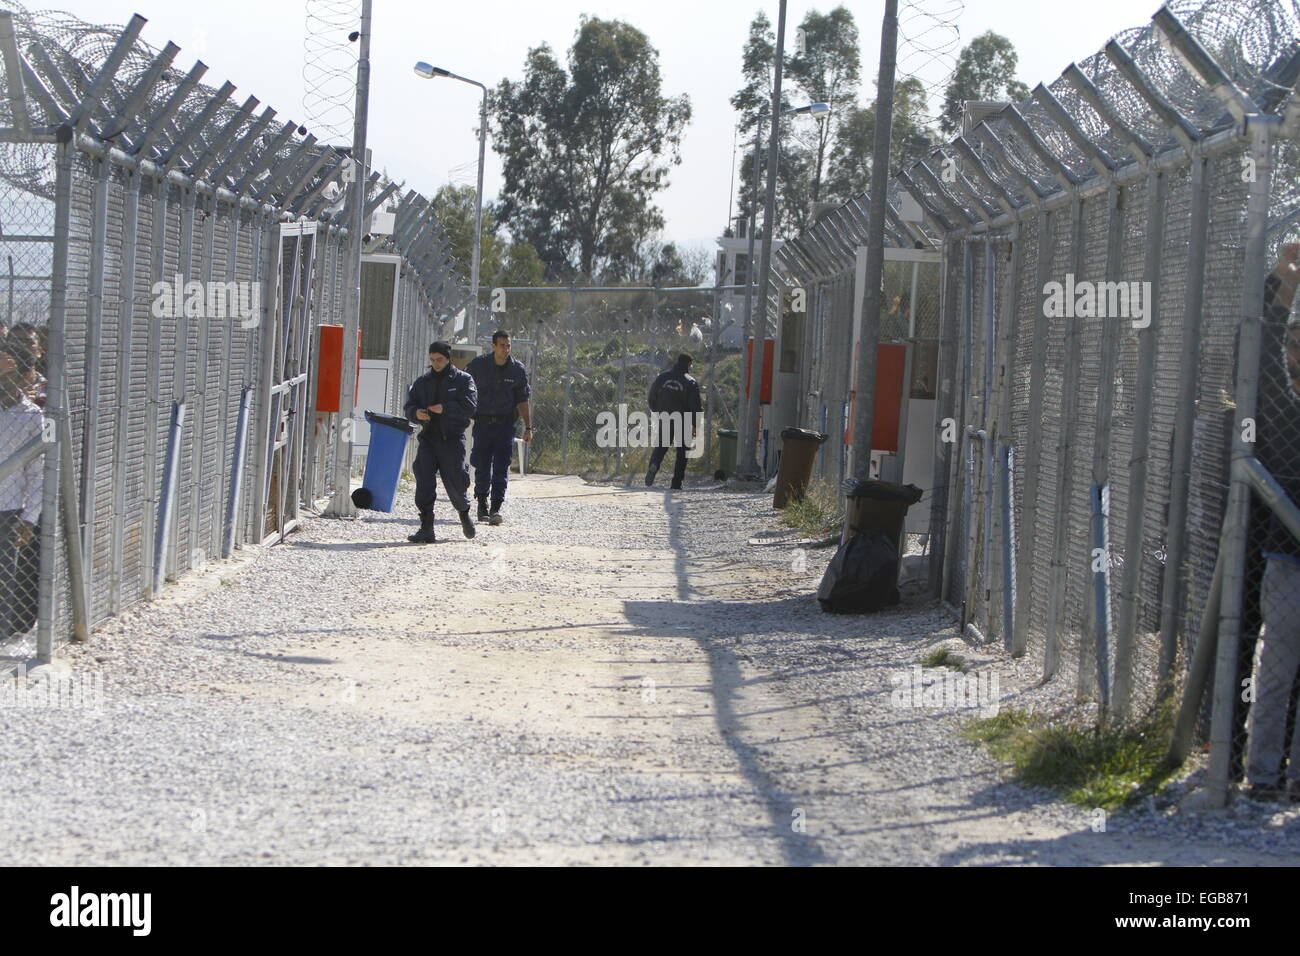 View into the detention camp with two separated areas. Minor scuffles between riot police and protesters broke out - Stock Image